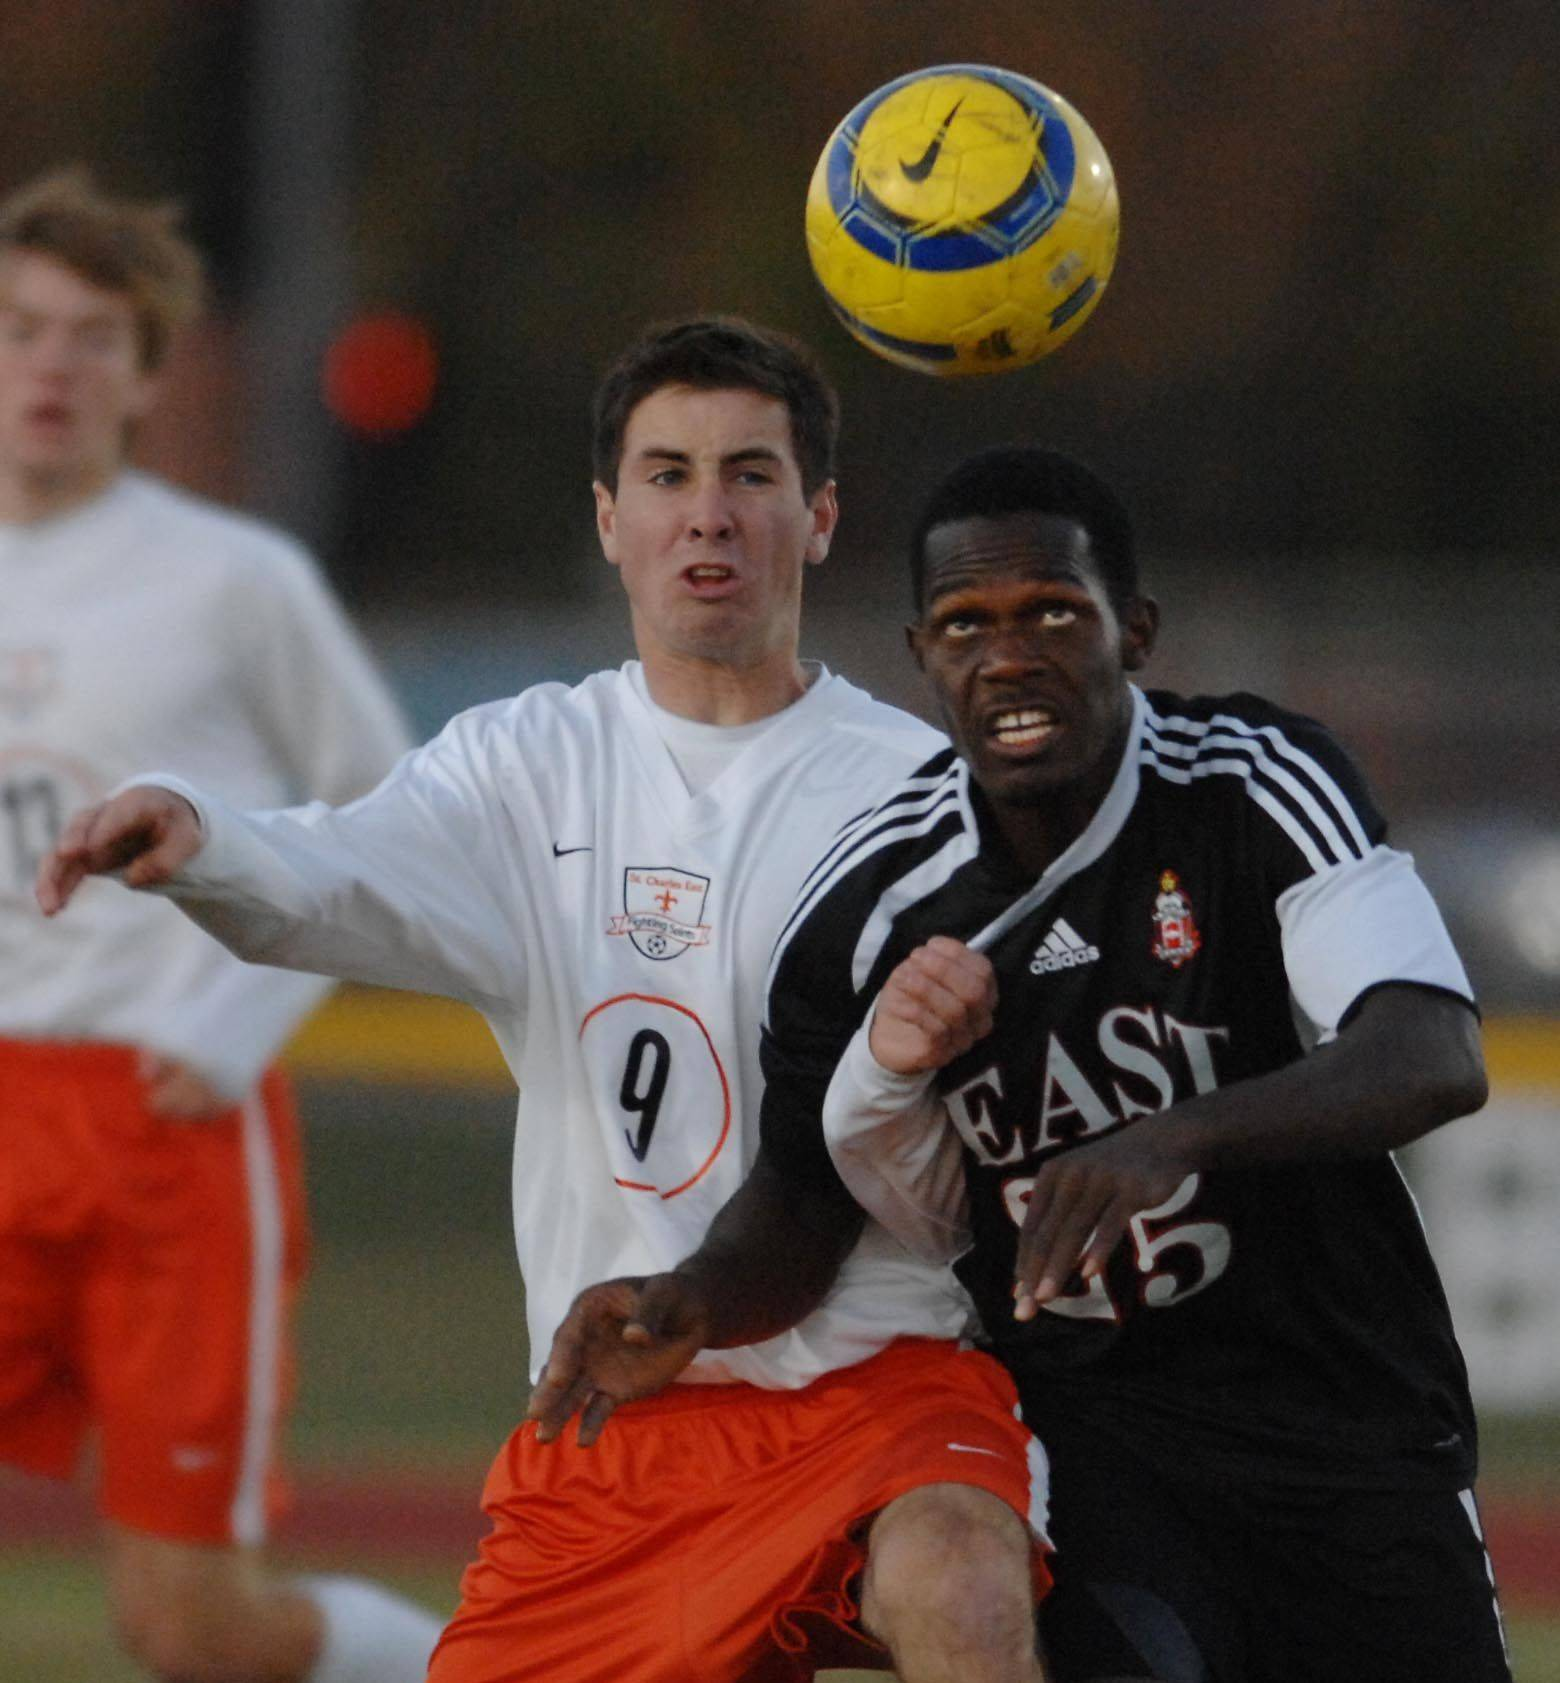 St. Charles East's Brian Gielow battles with East Aurora's Abraham Kanneh Wednesday during the Upstate Eight boys soccer championship game at St. Charles East.